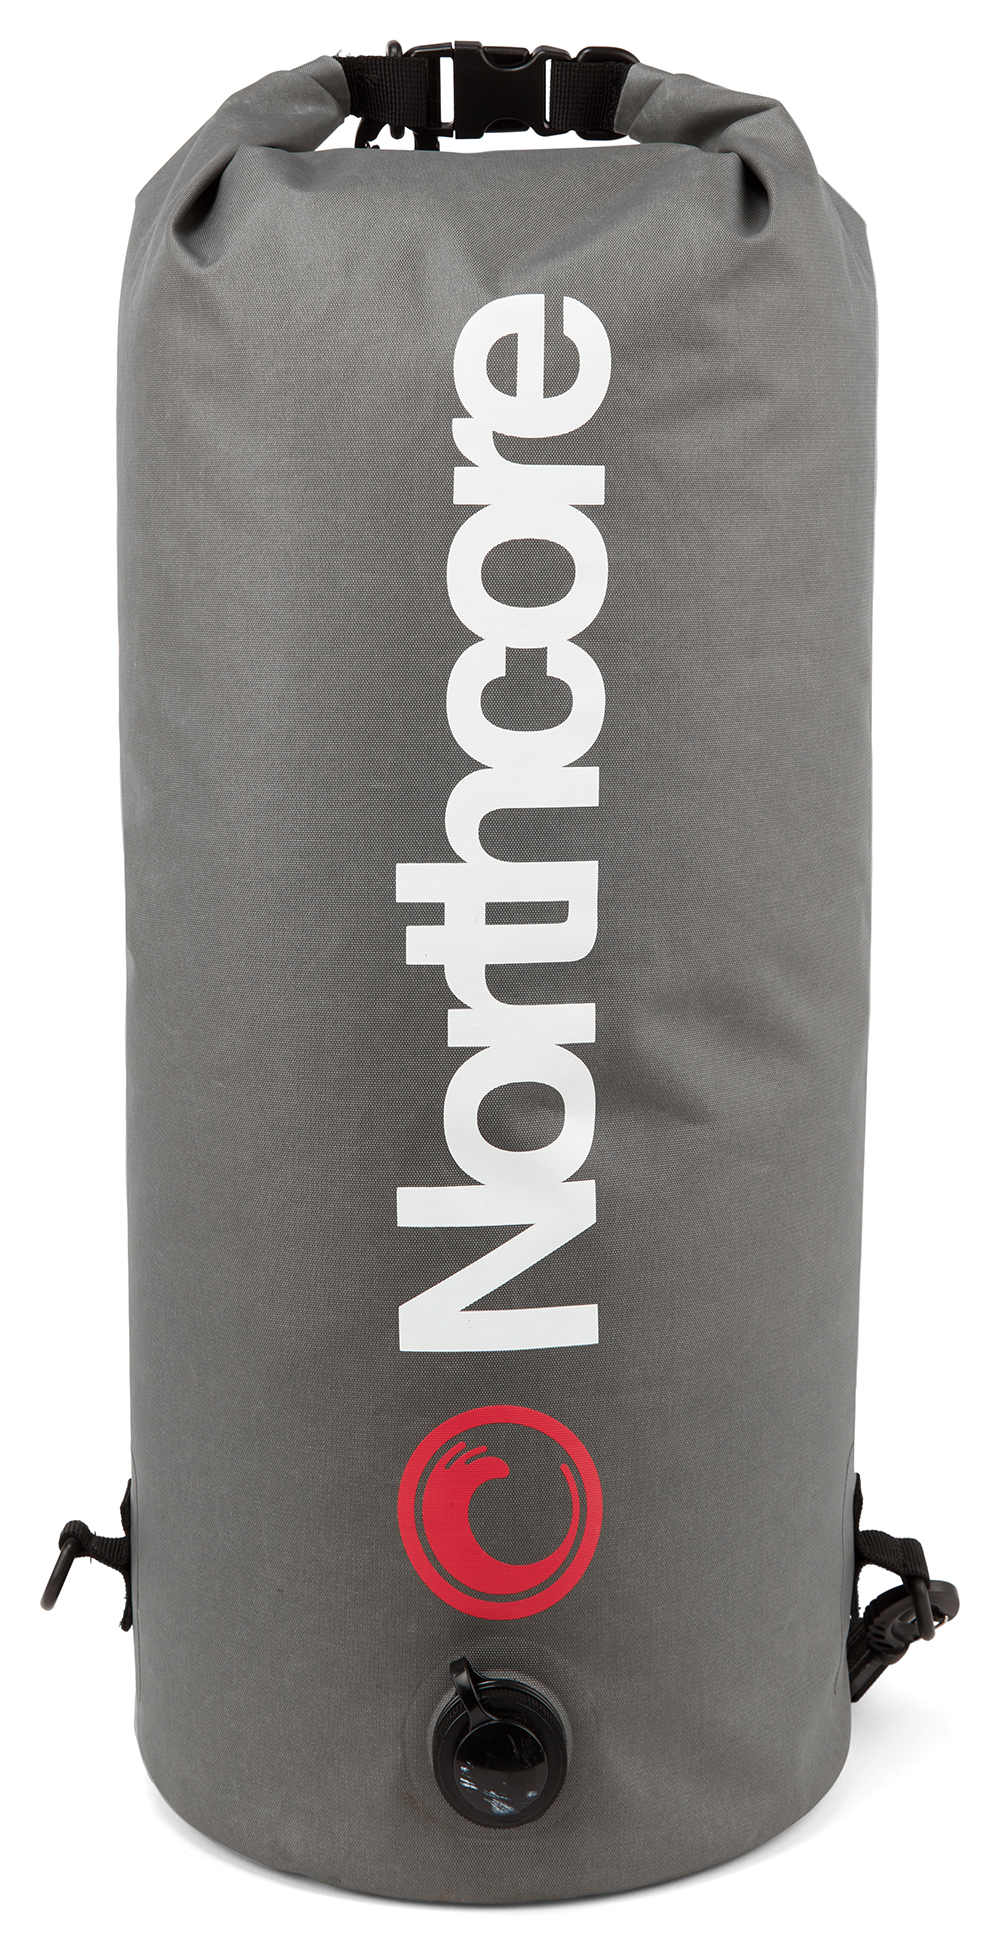 Northcore Waterproof Compression Bag - 20 Litres Grey Colour